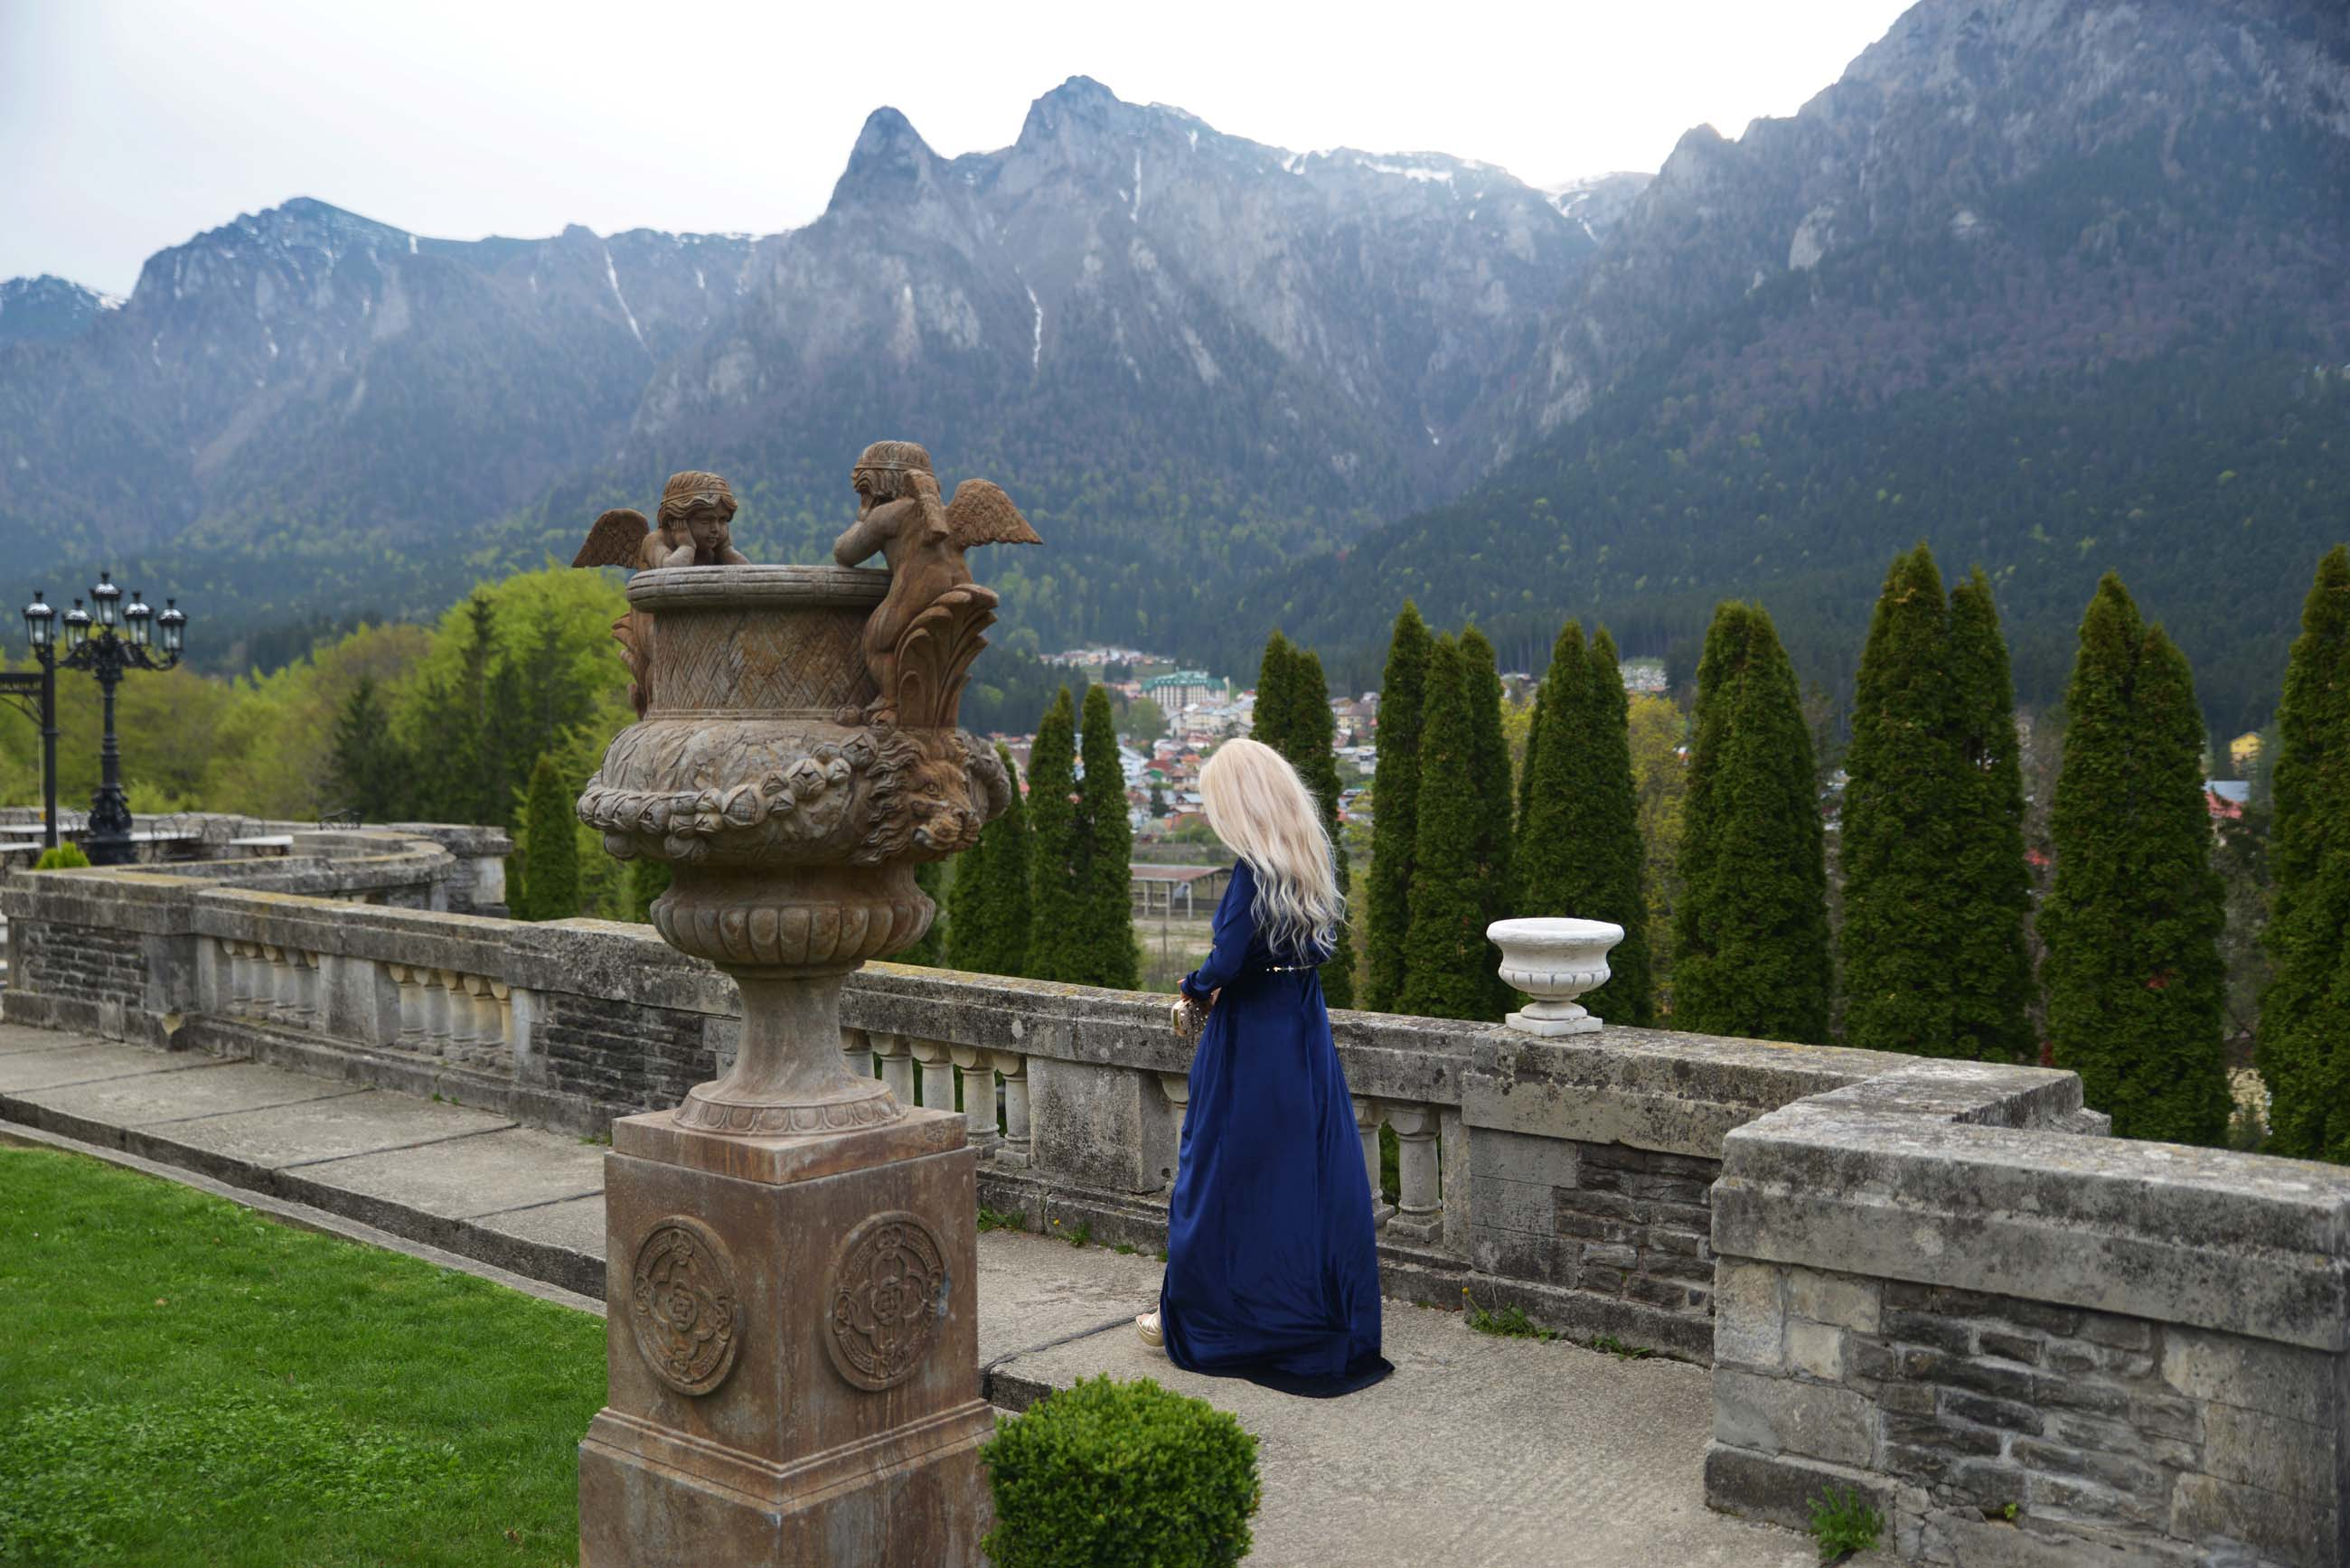 19_cantacuzino_palace_blue_royal_velvet_dress